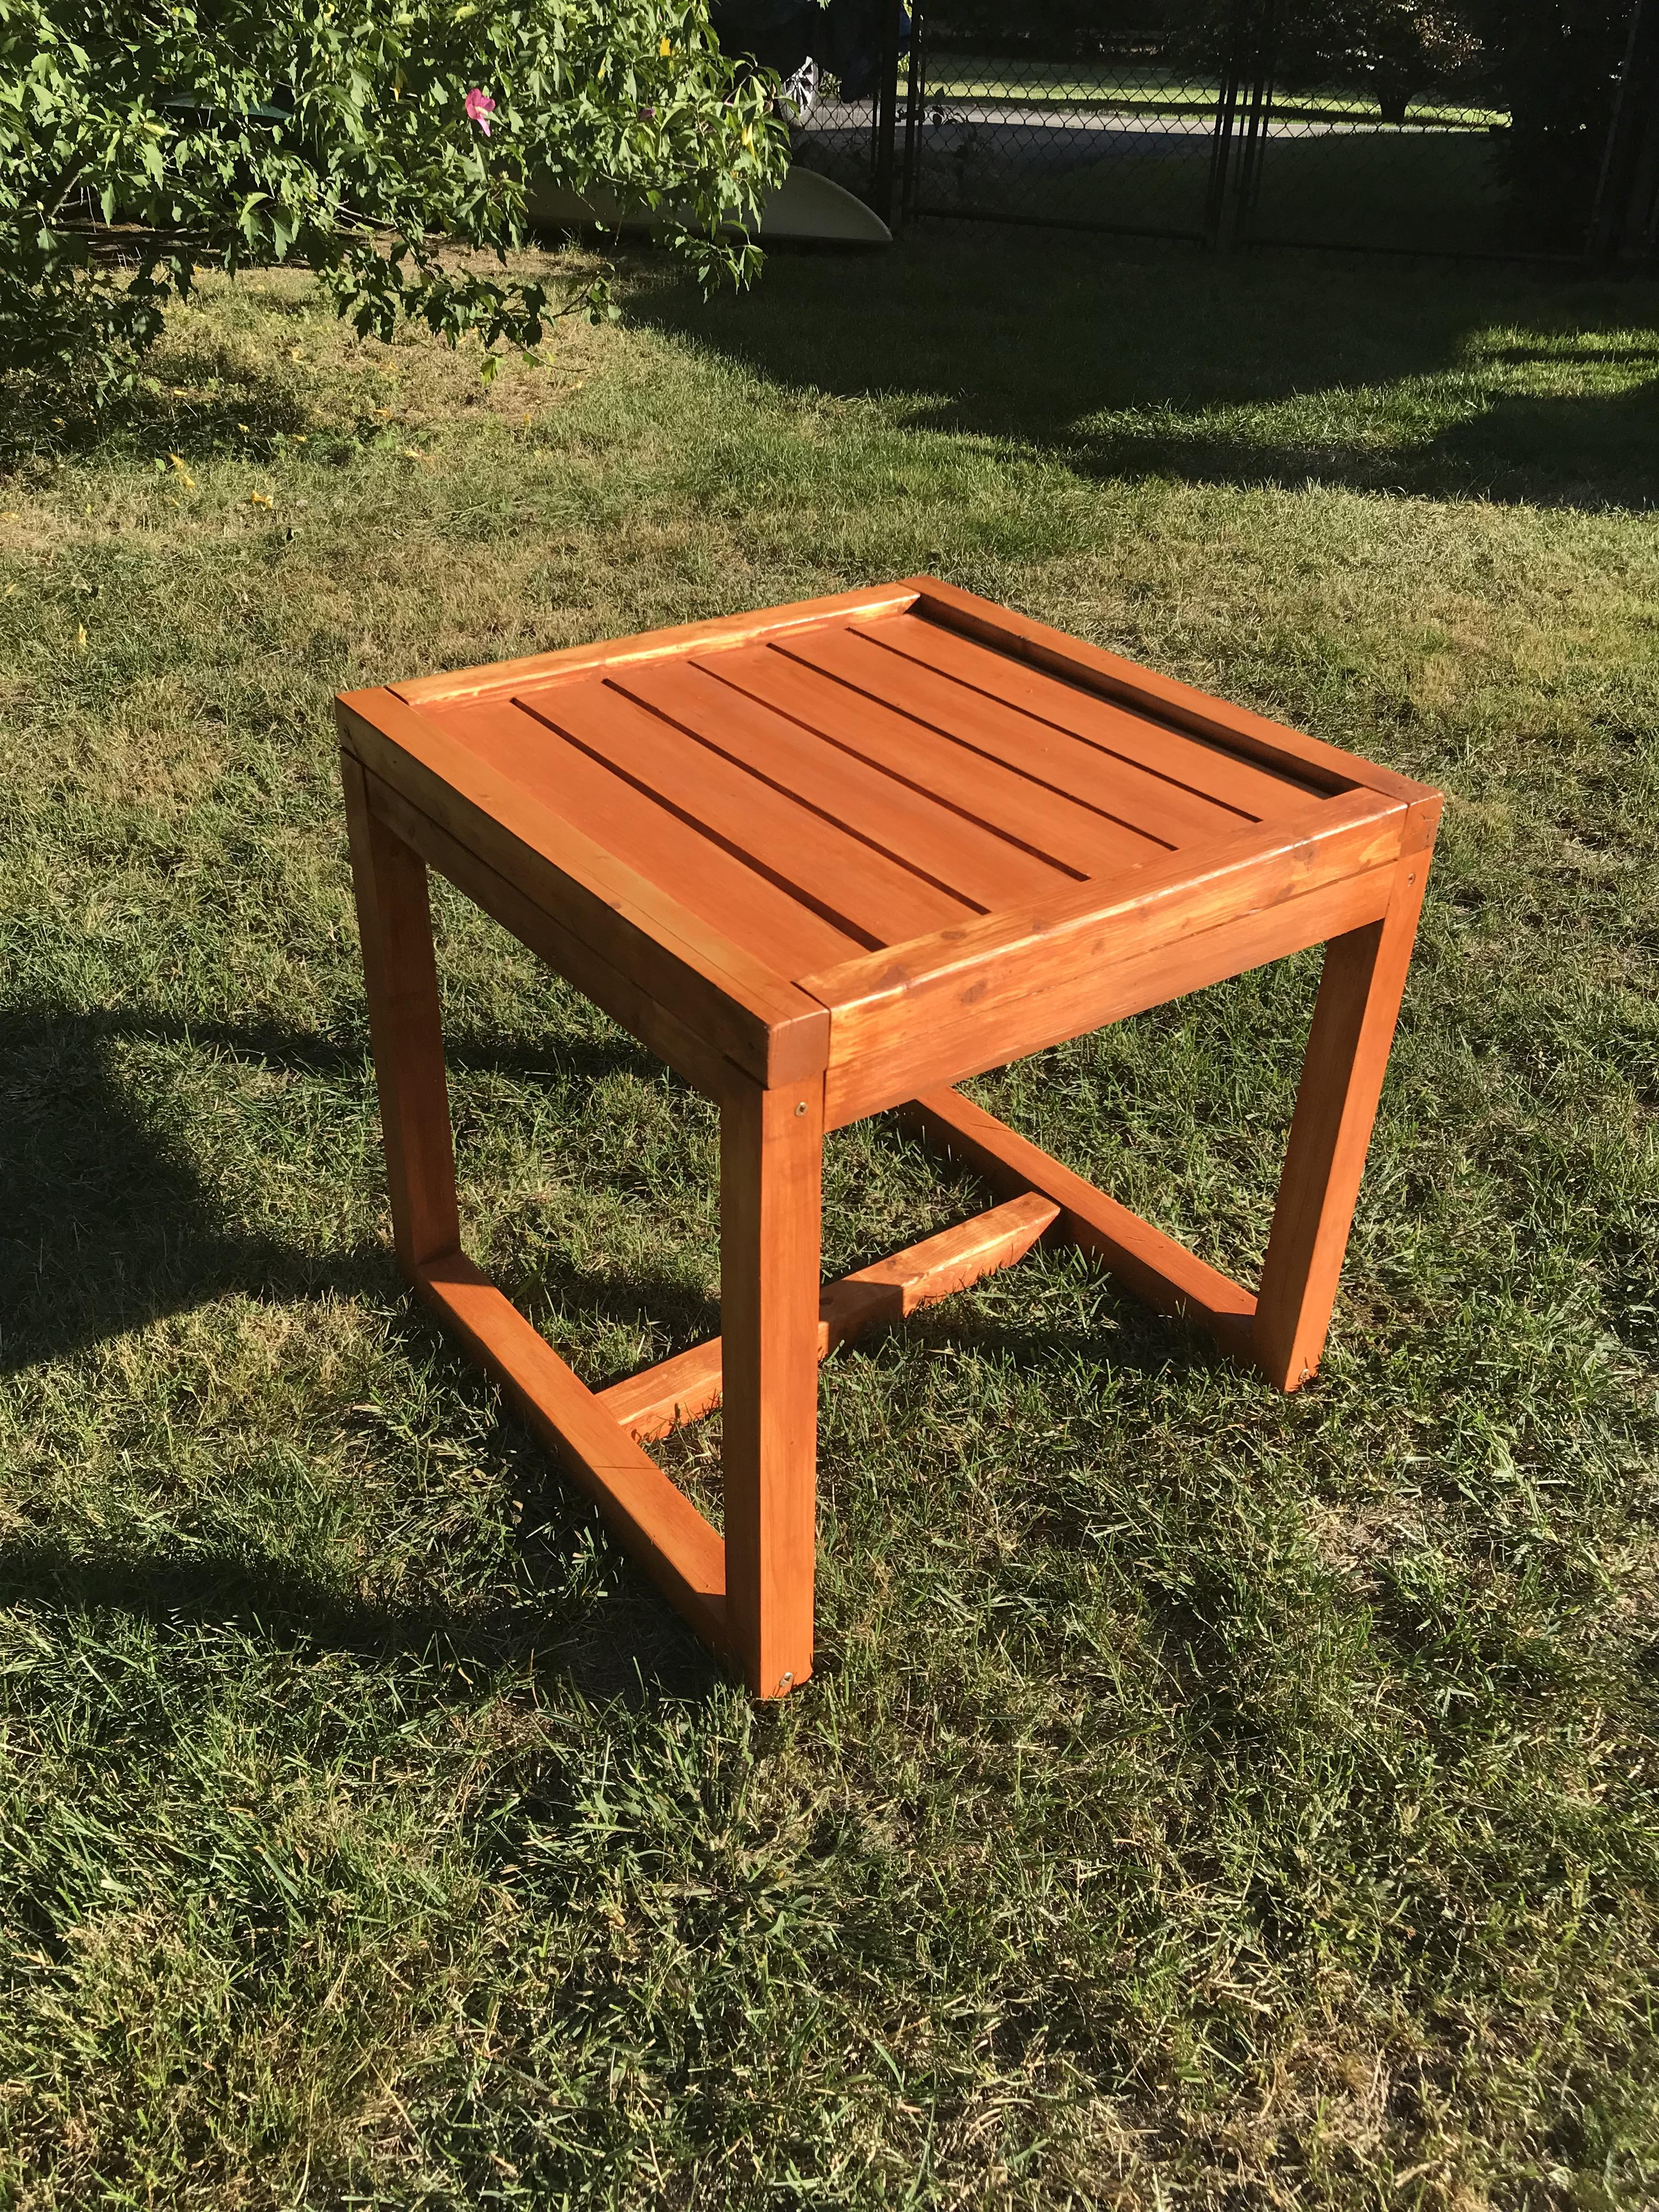 my first project a small patio table